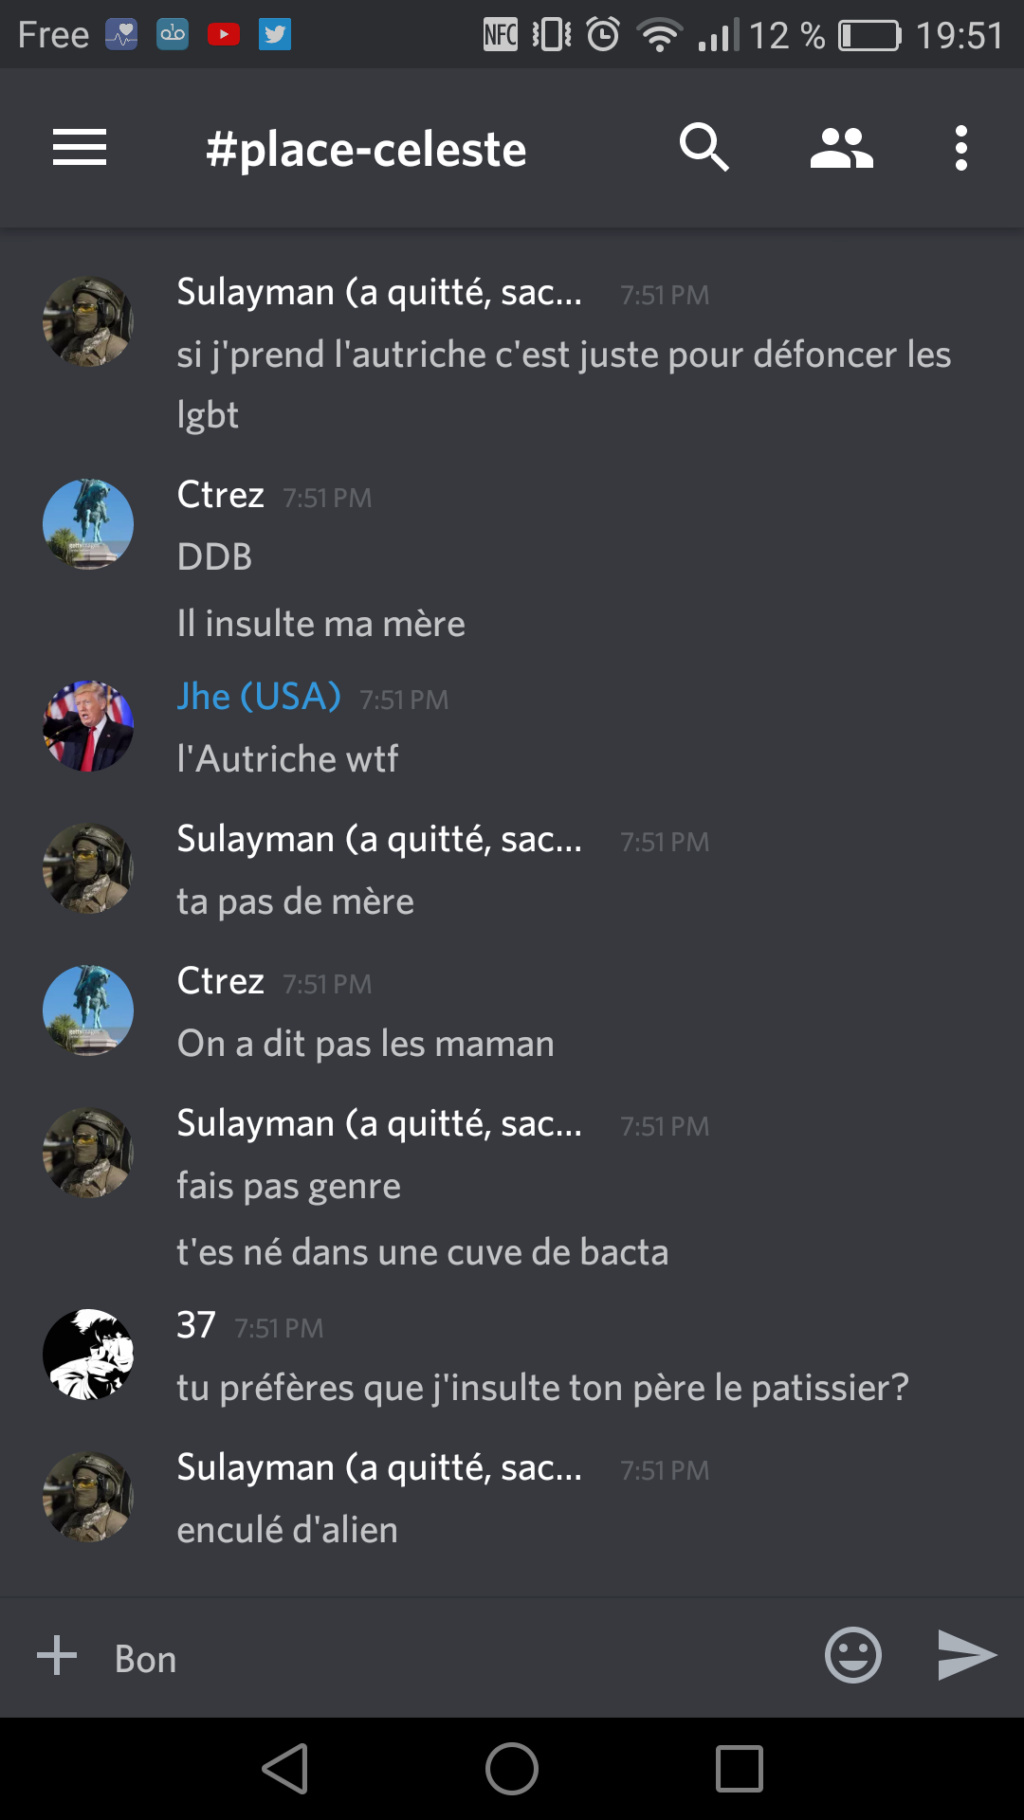 [plainte] insulte de 37 Screen11